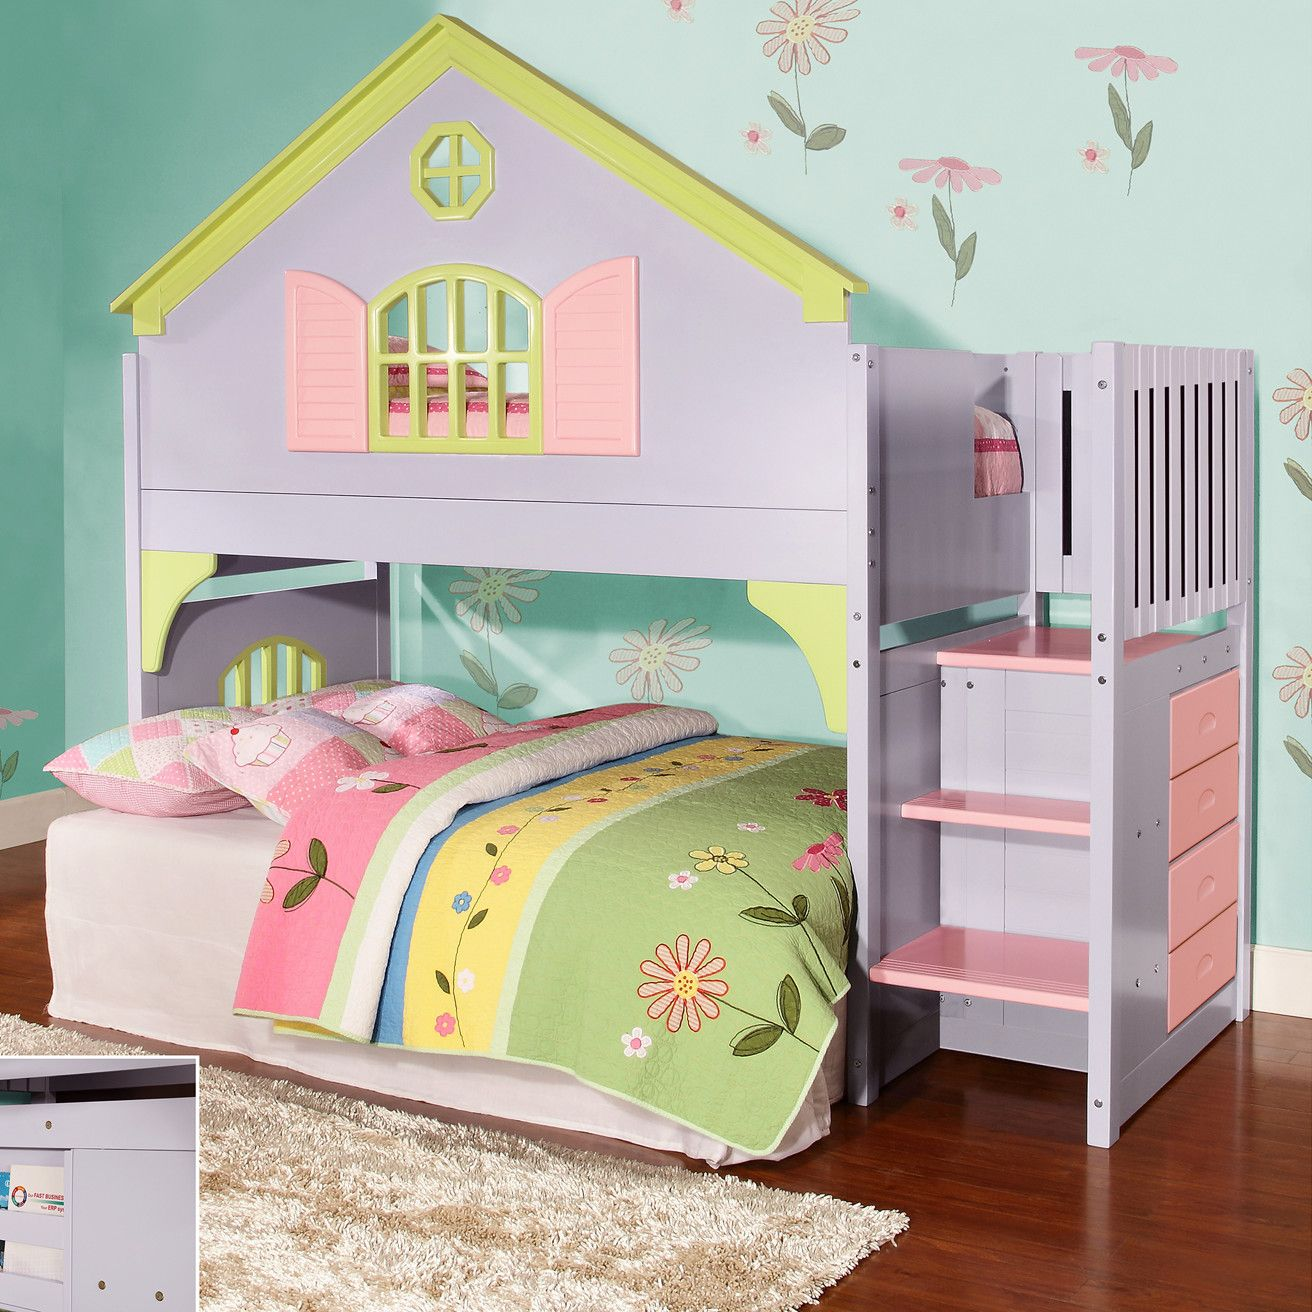 Bunk beds doll house : Donco kids doll house twin loft bed beds and kid